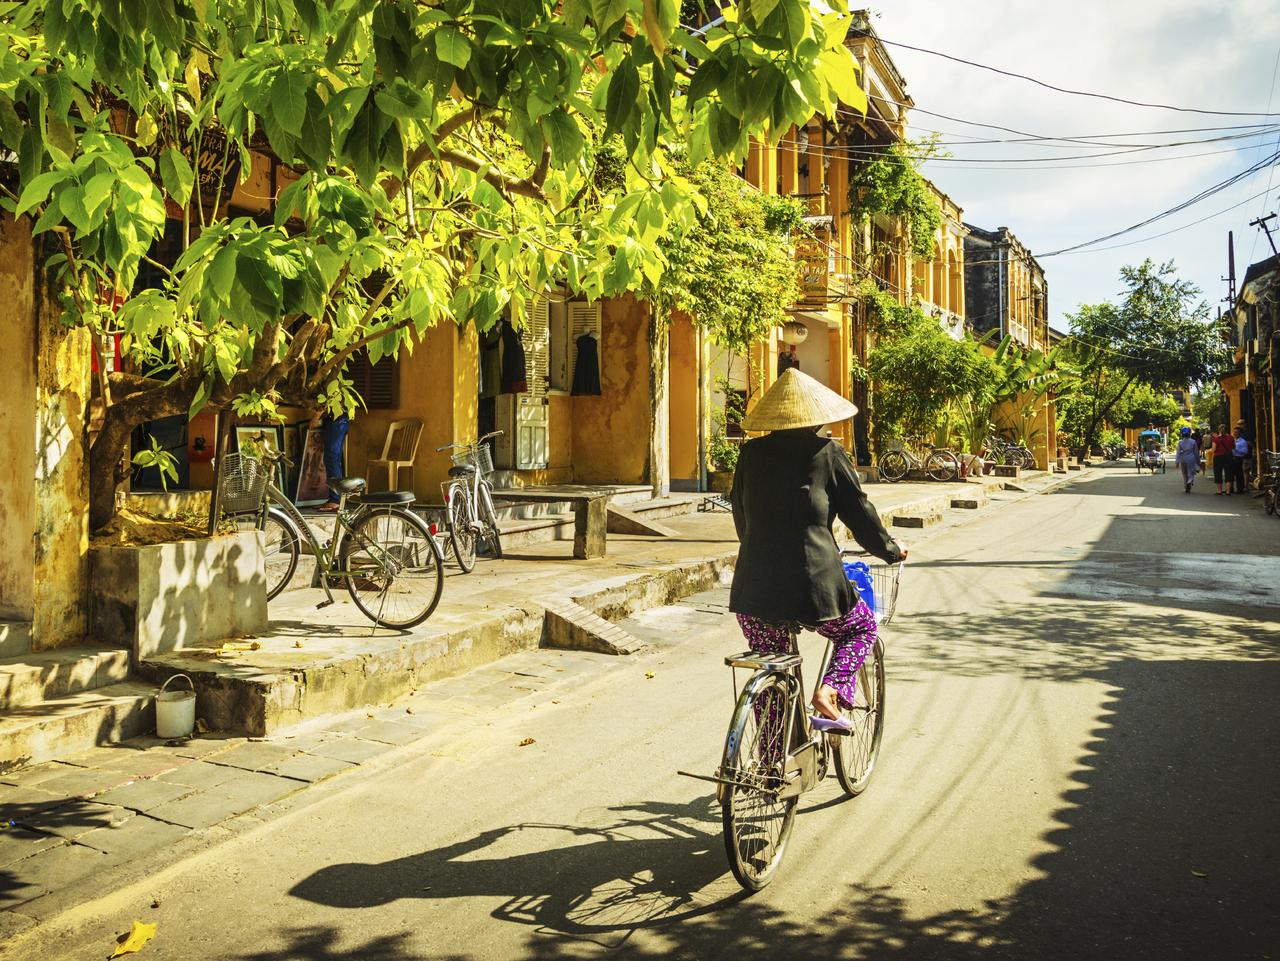 ESCAPE: DOC HOLIDAY  ..  Hoi An, Vietnam - November 21, 2012: Vietnamese woman with traditional Vietnamese hat on a bicycle rides down along the street. Picture: iStock